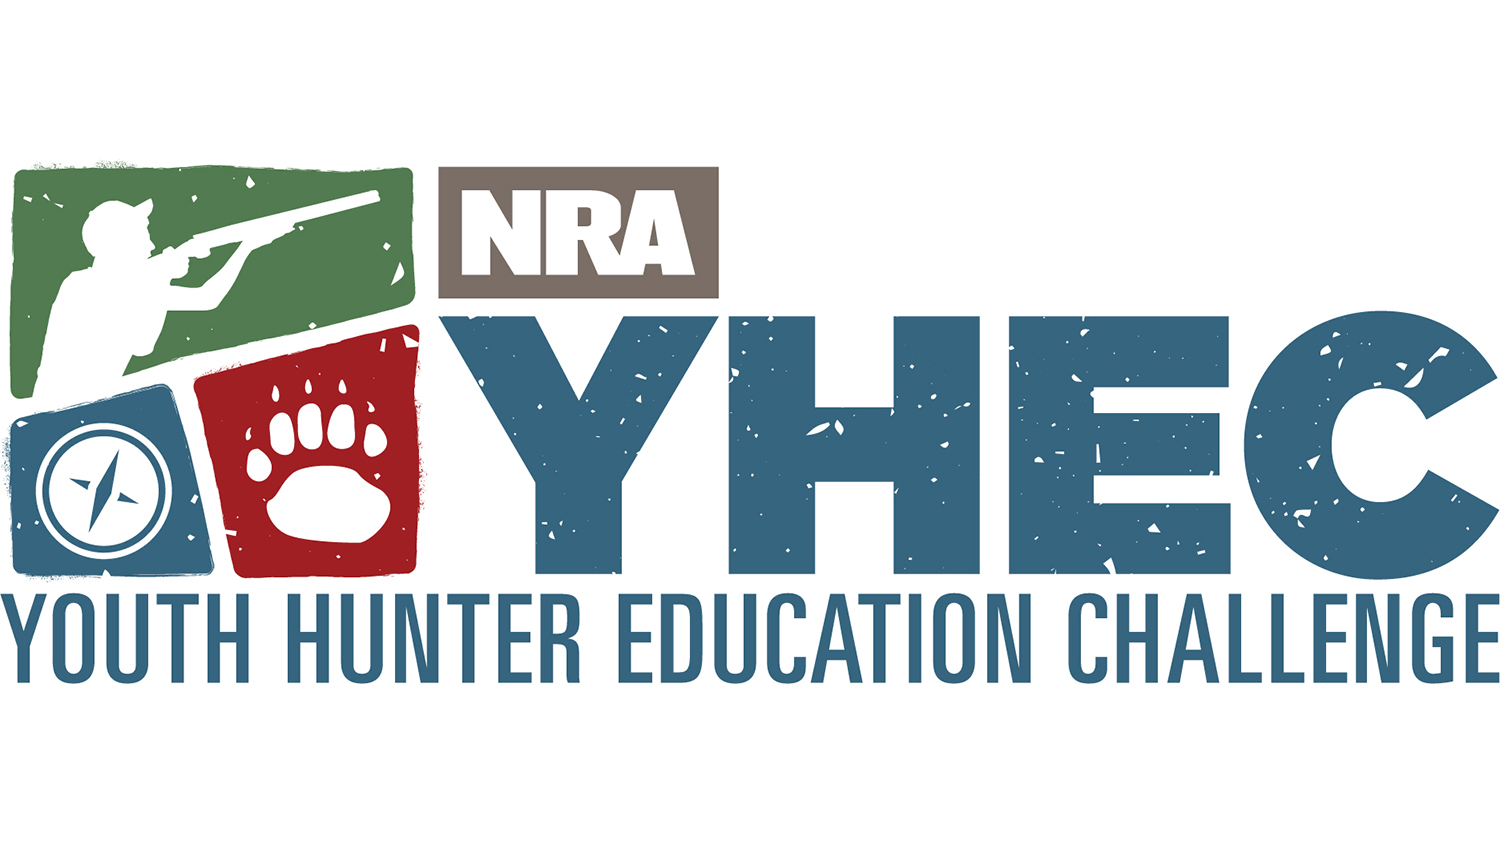 WTVY.com: Youth Hunter Education Challenge